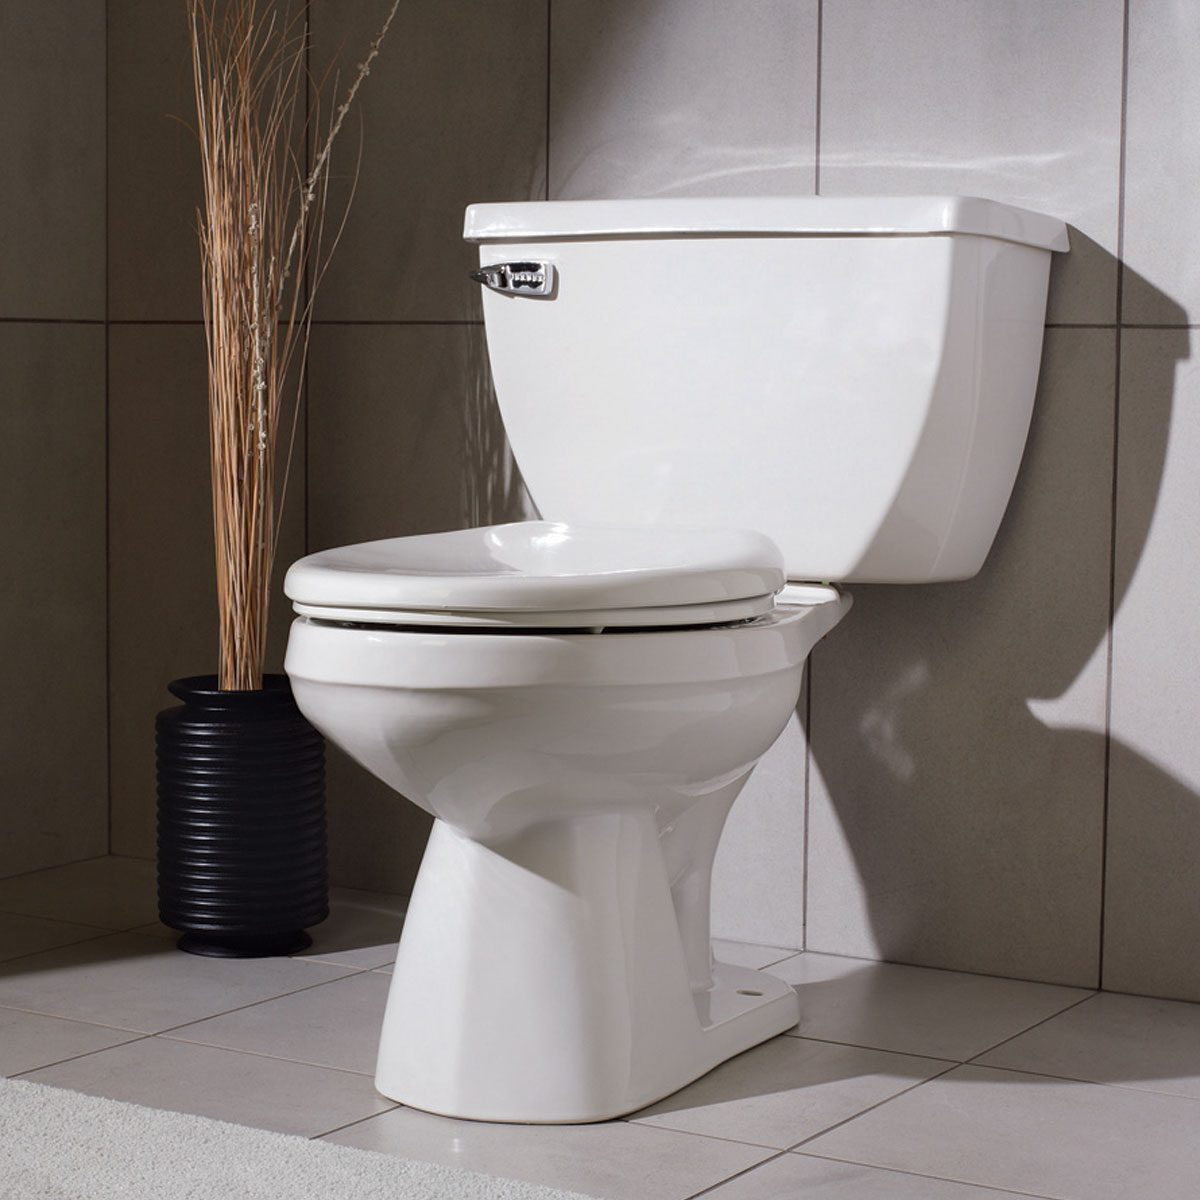 Tips for Buying a Toilet | Family Handyman